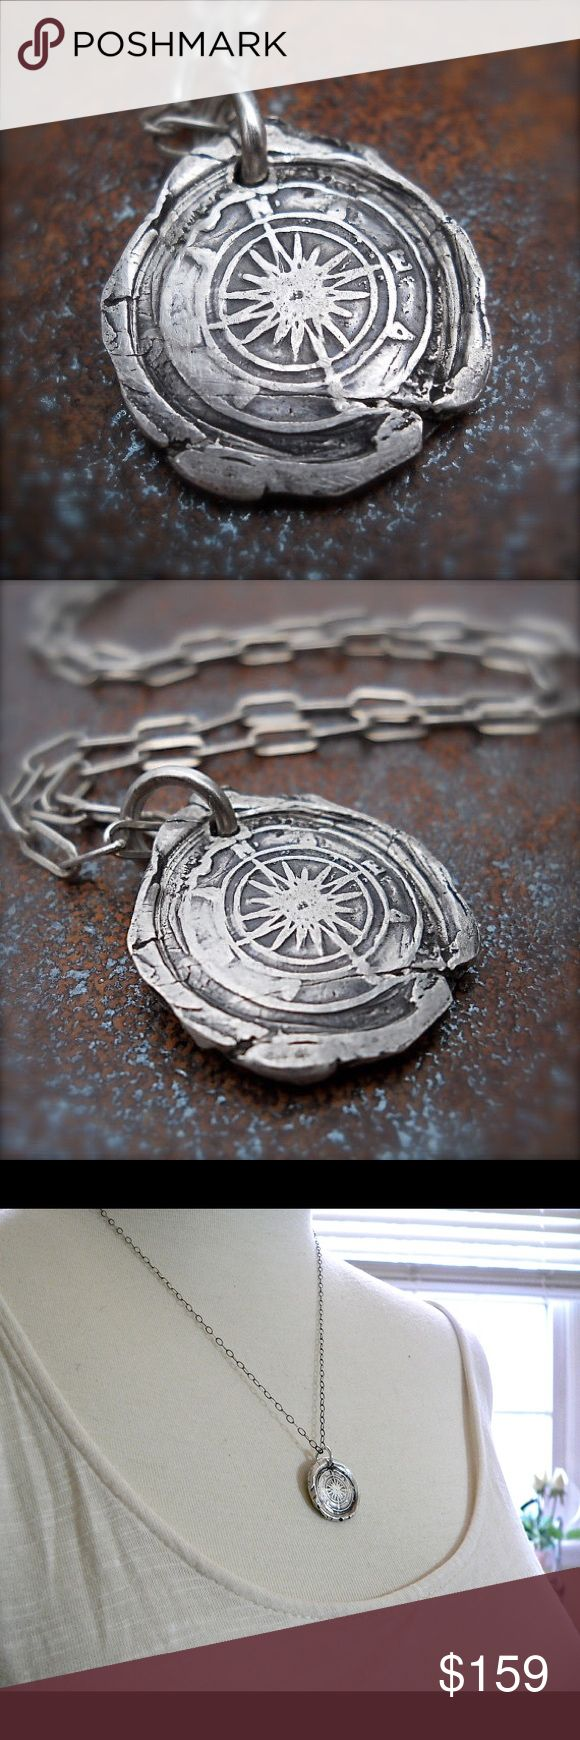 """Handmade Compass Necklace - STAY on COURSE $159 Oxidized Sterling 3/4"""" ( 20mm) Compass Pendant on 20"""" Sterling Chain .......I make these one by one, for women and men. Ask me about thicker chains for men. The 3rd photo is the chain you will receive....Find your True North. A compass represents focus and direction.....The pendant is made using reclaimed sterling and I have made this piece for  eco-conscious celebs: Leonardo Dicaprio, Pink, Sting, Sheryl Crow, Cameron Diaz, Hayden Panettiere…"""